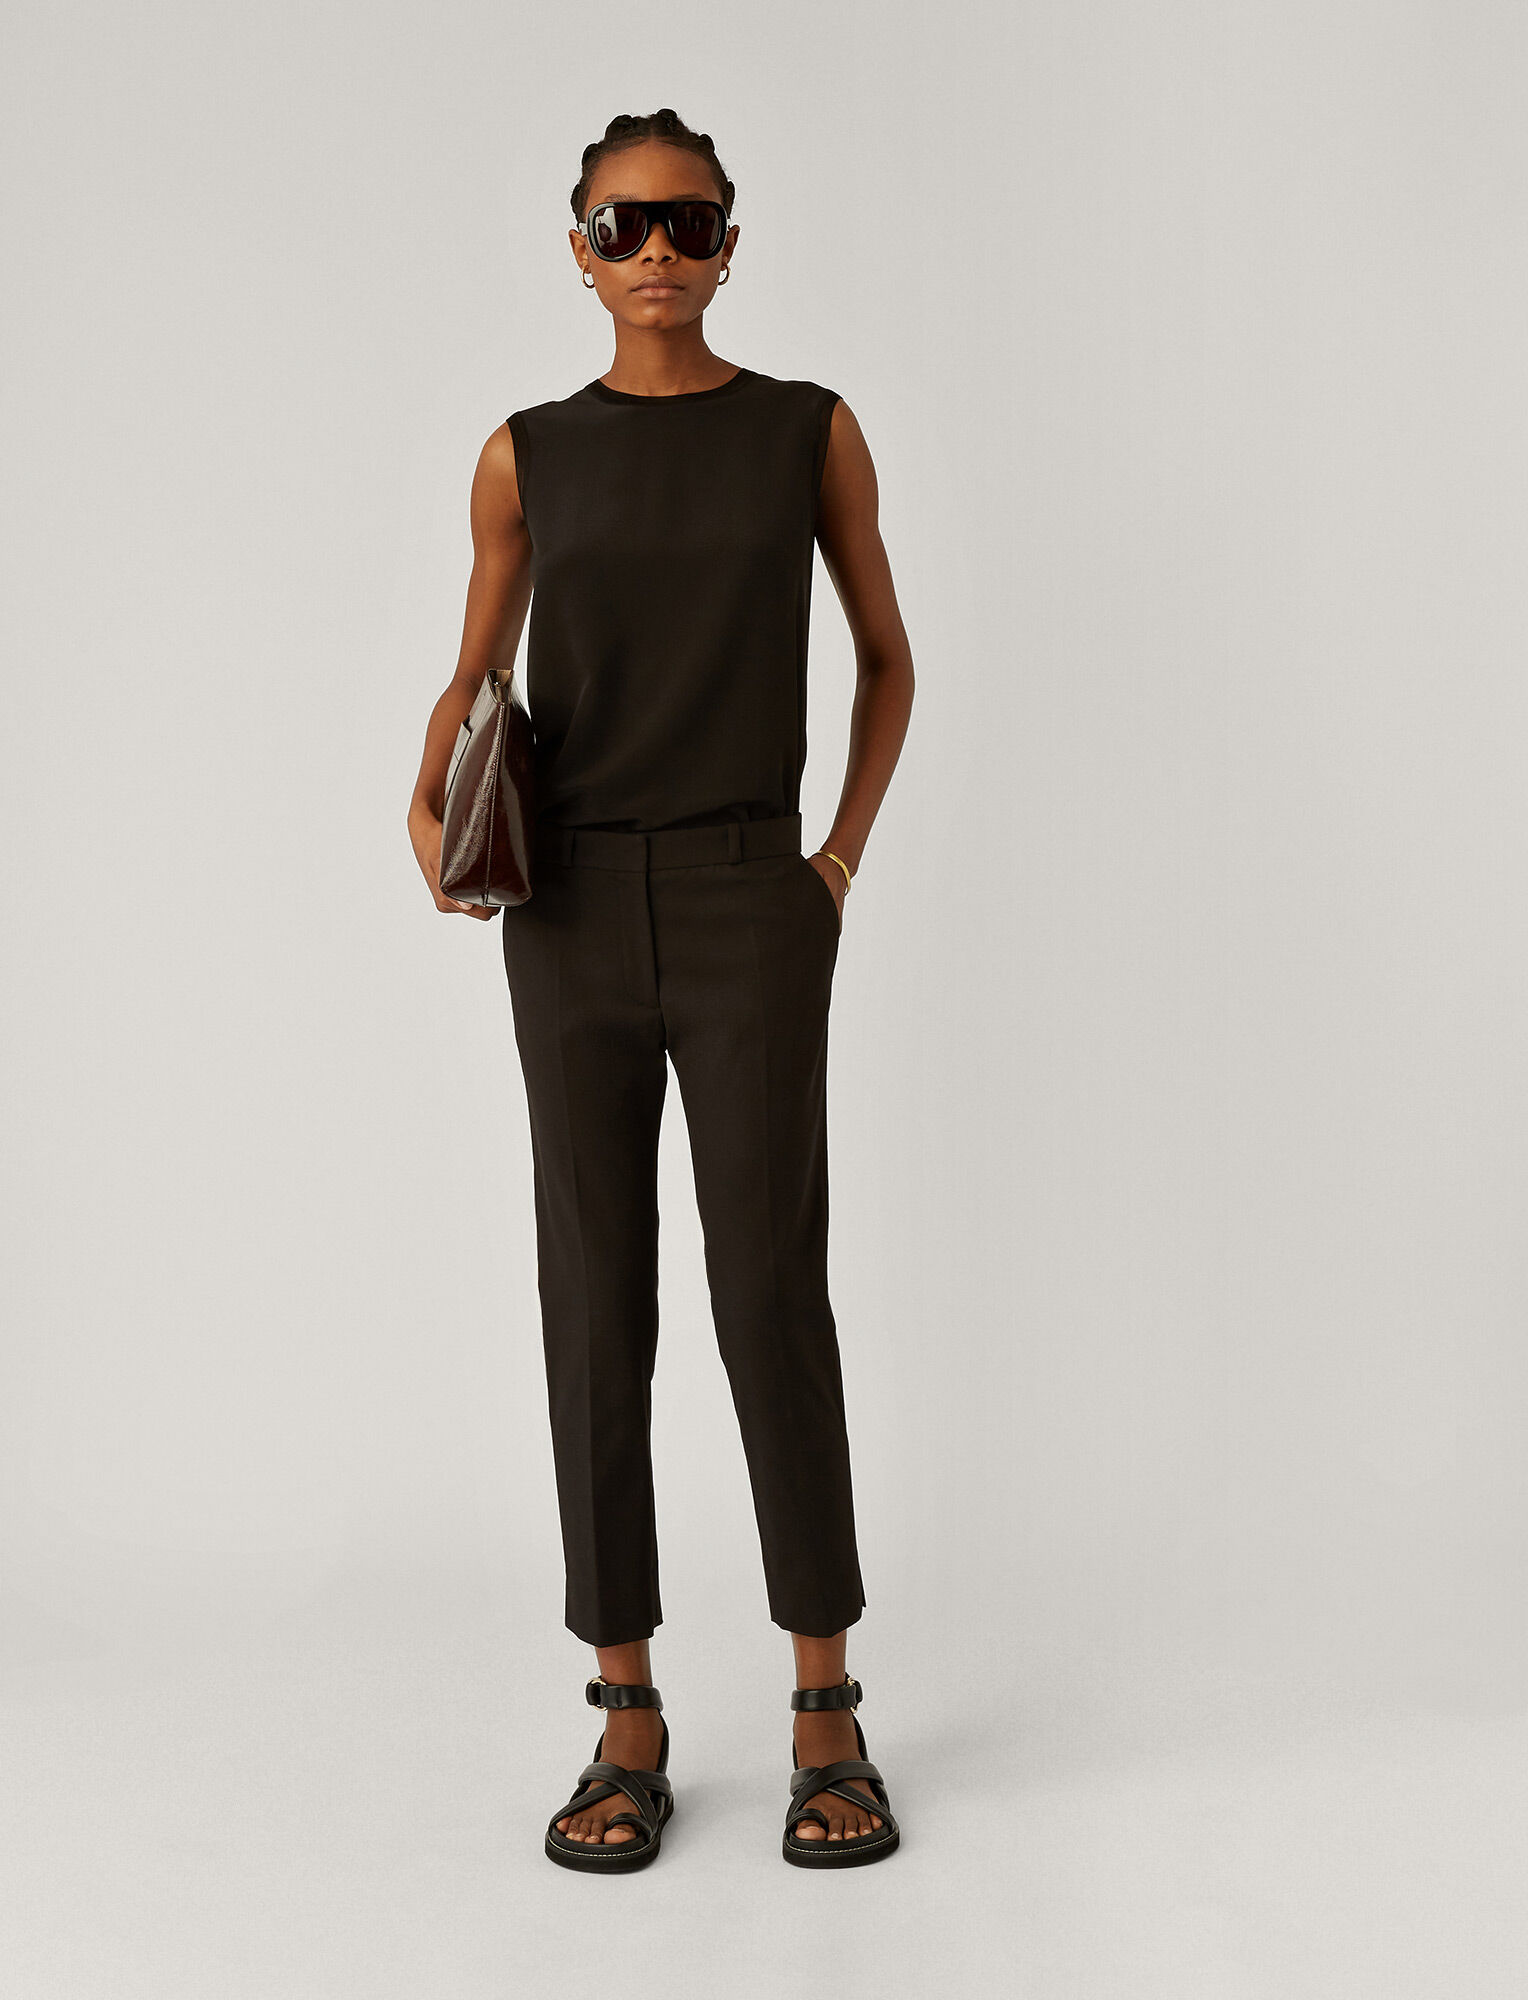 Joseph, Bing Court Double Cotton Stretch Trousers, in BLACK